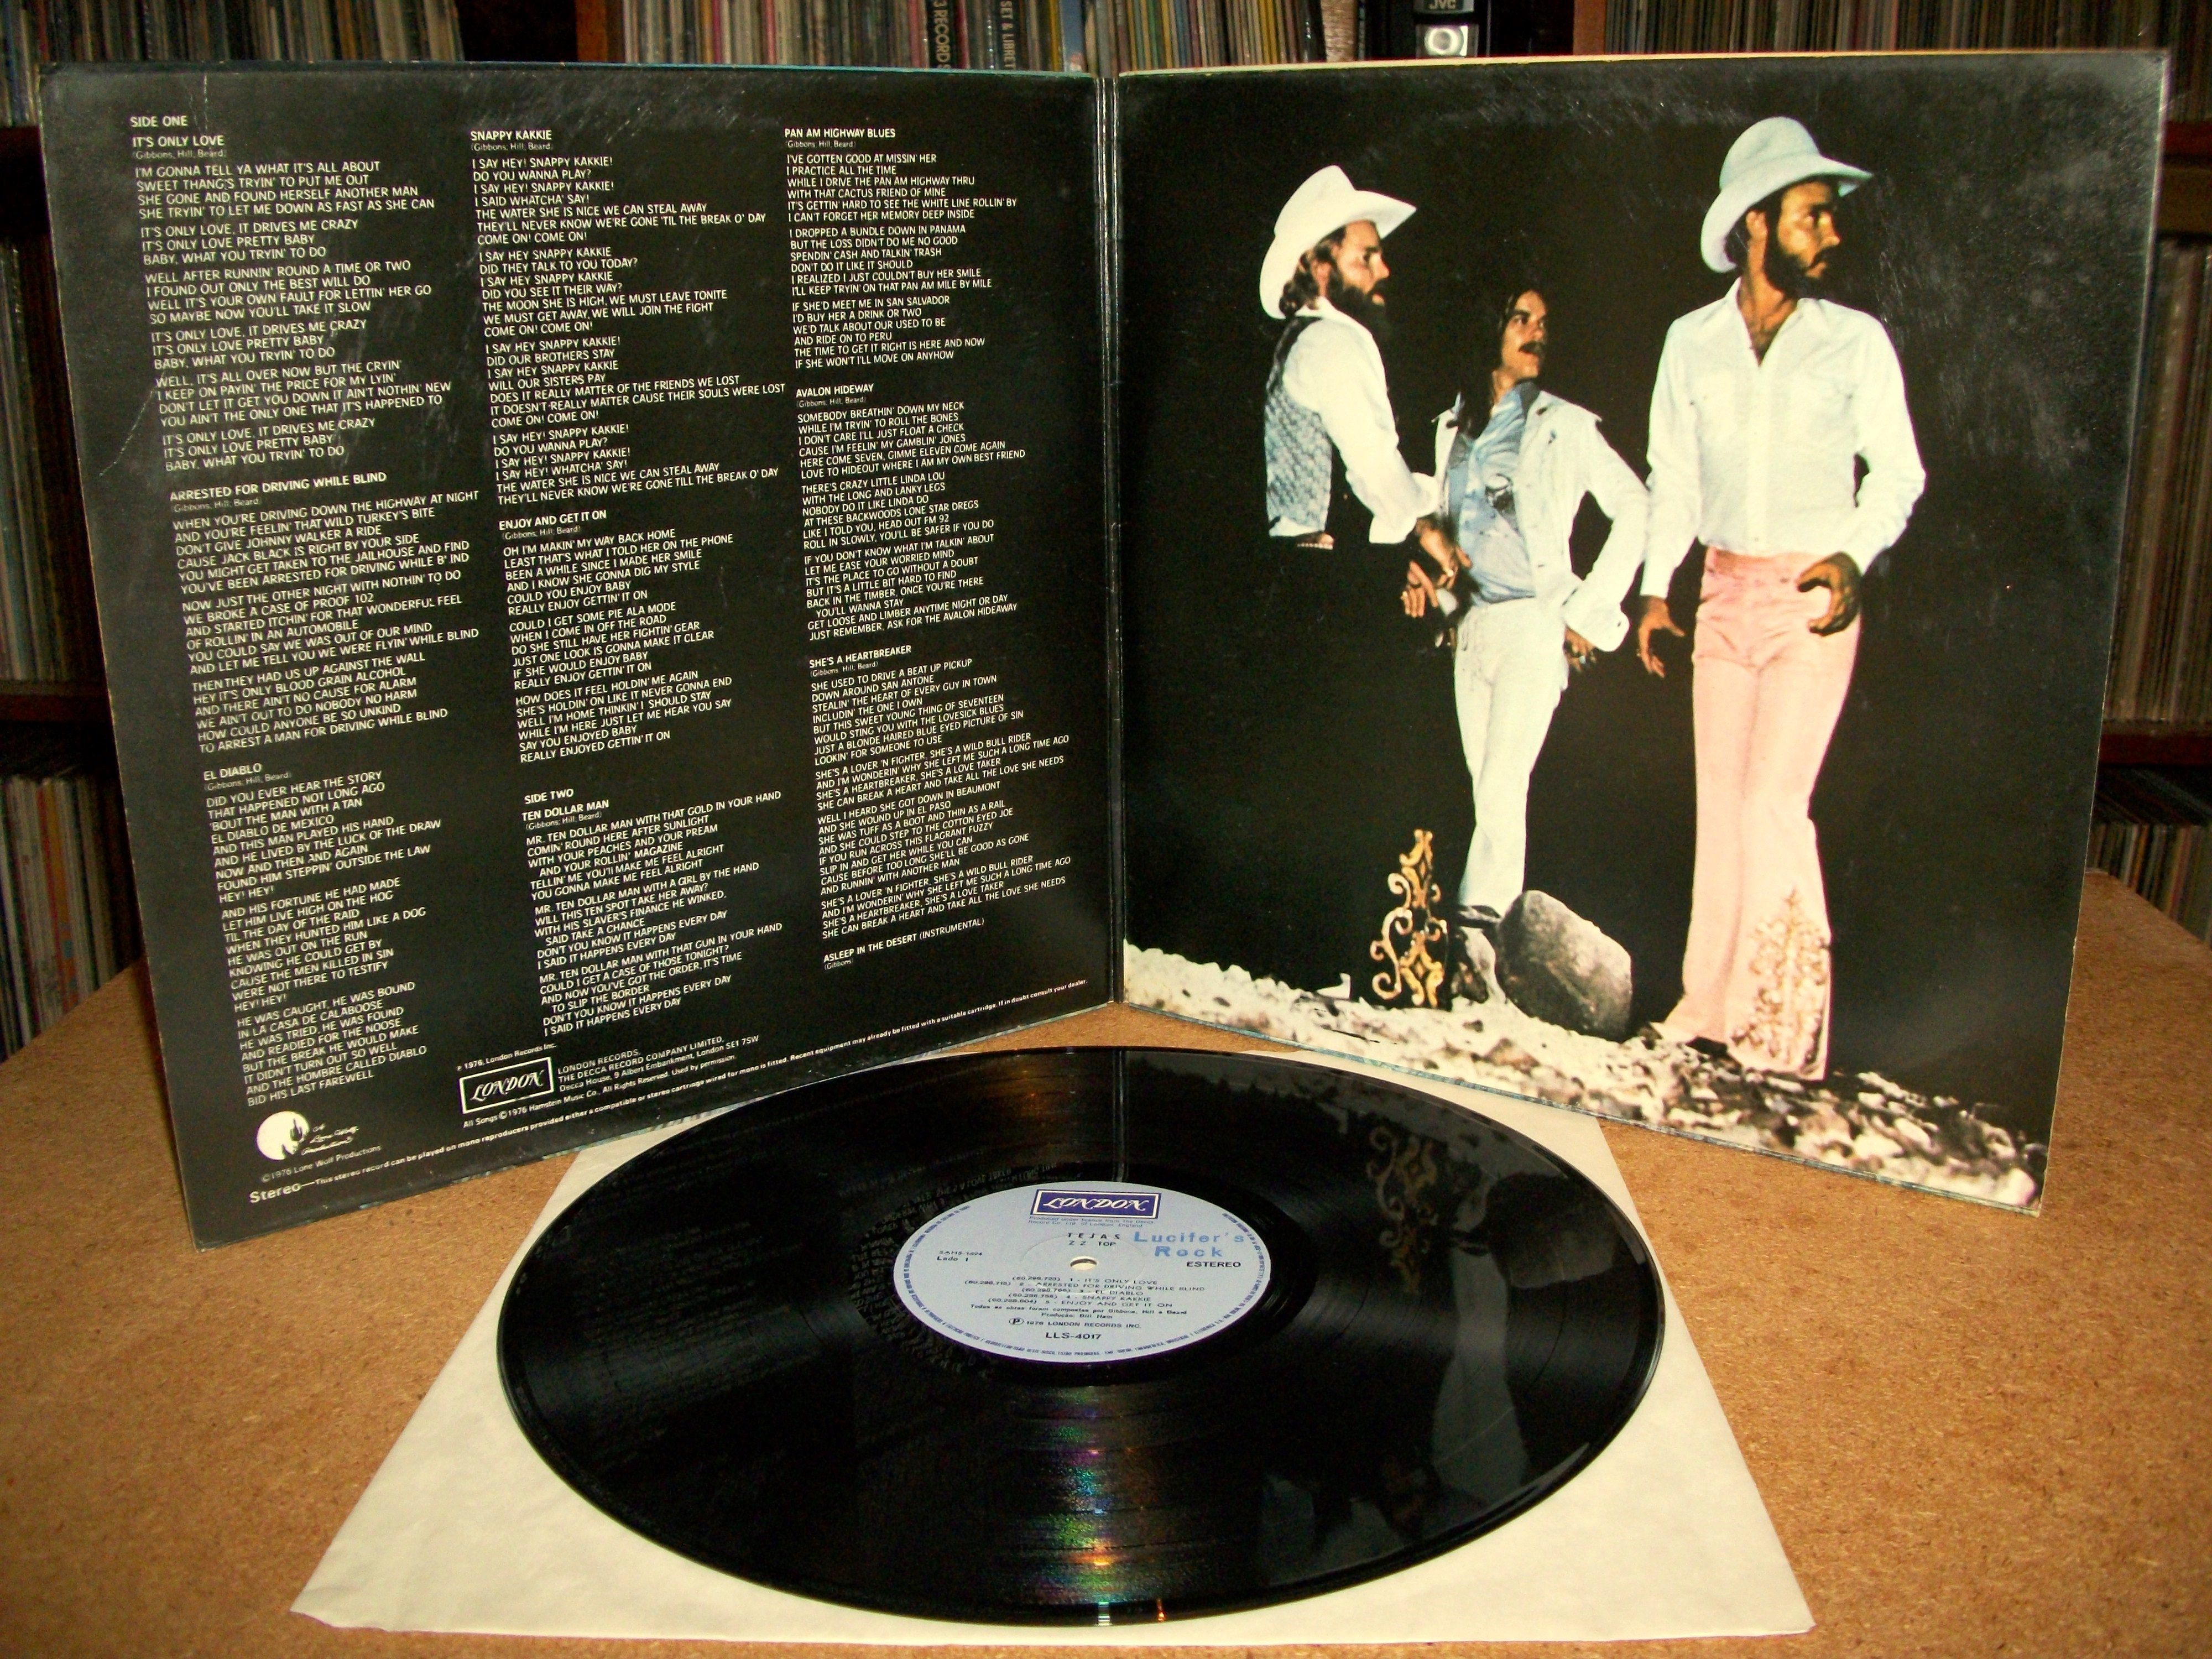 Sinister Vinyl Collection Zz Top Tejas 1977